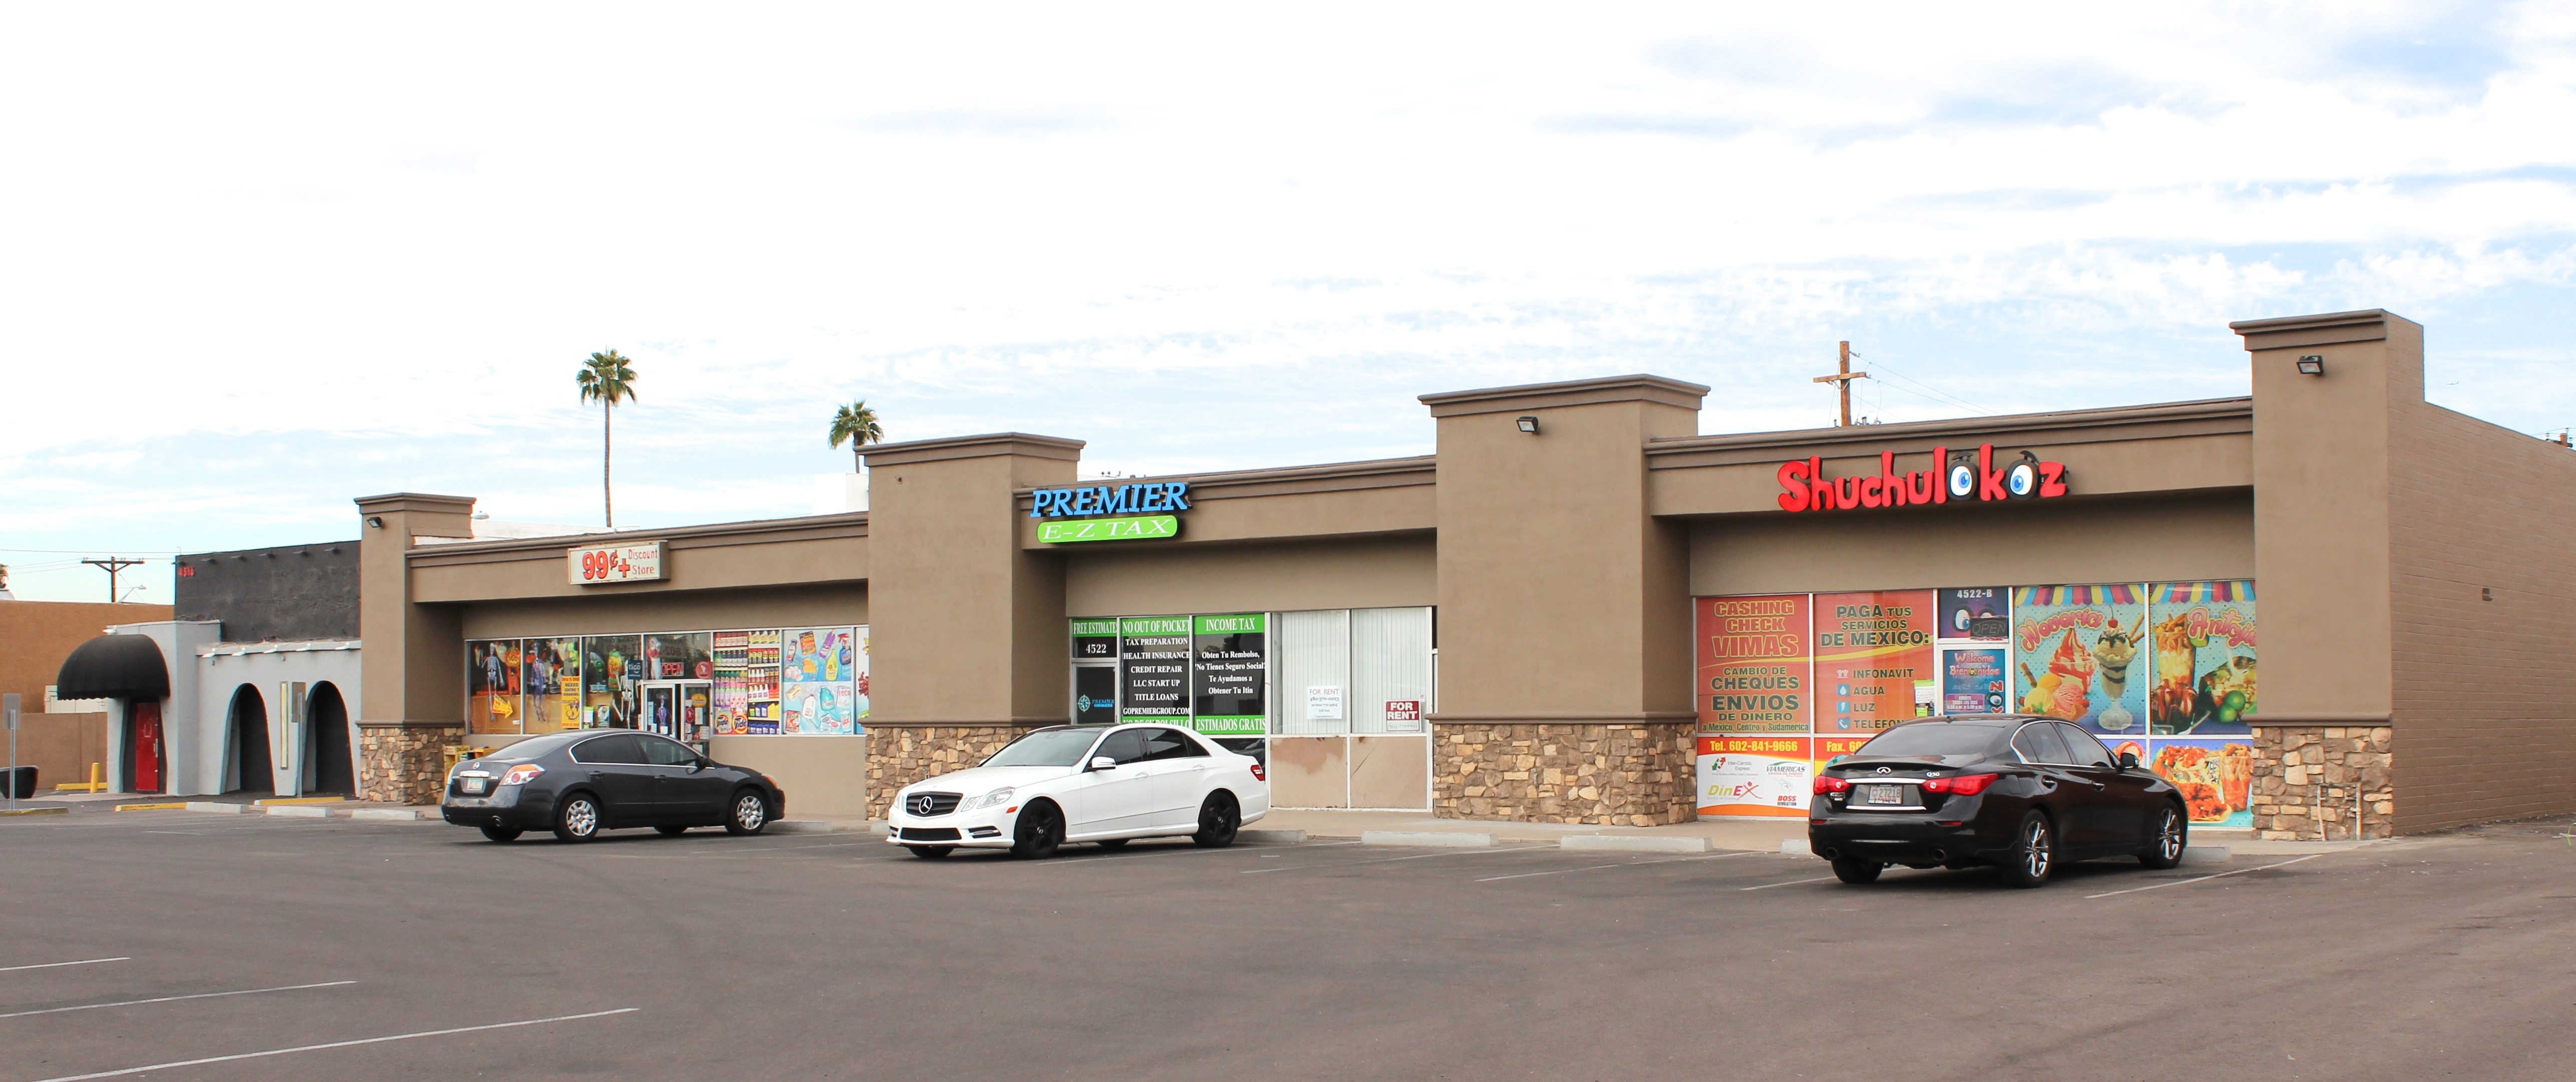 19 Campbell | Retail Space For Lease In Phoenix AZ | Vestis Group